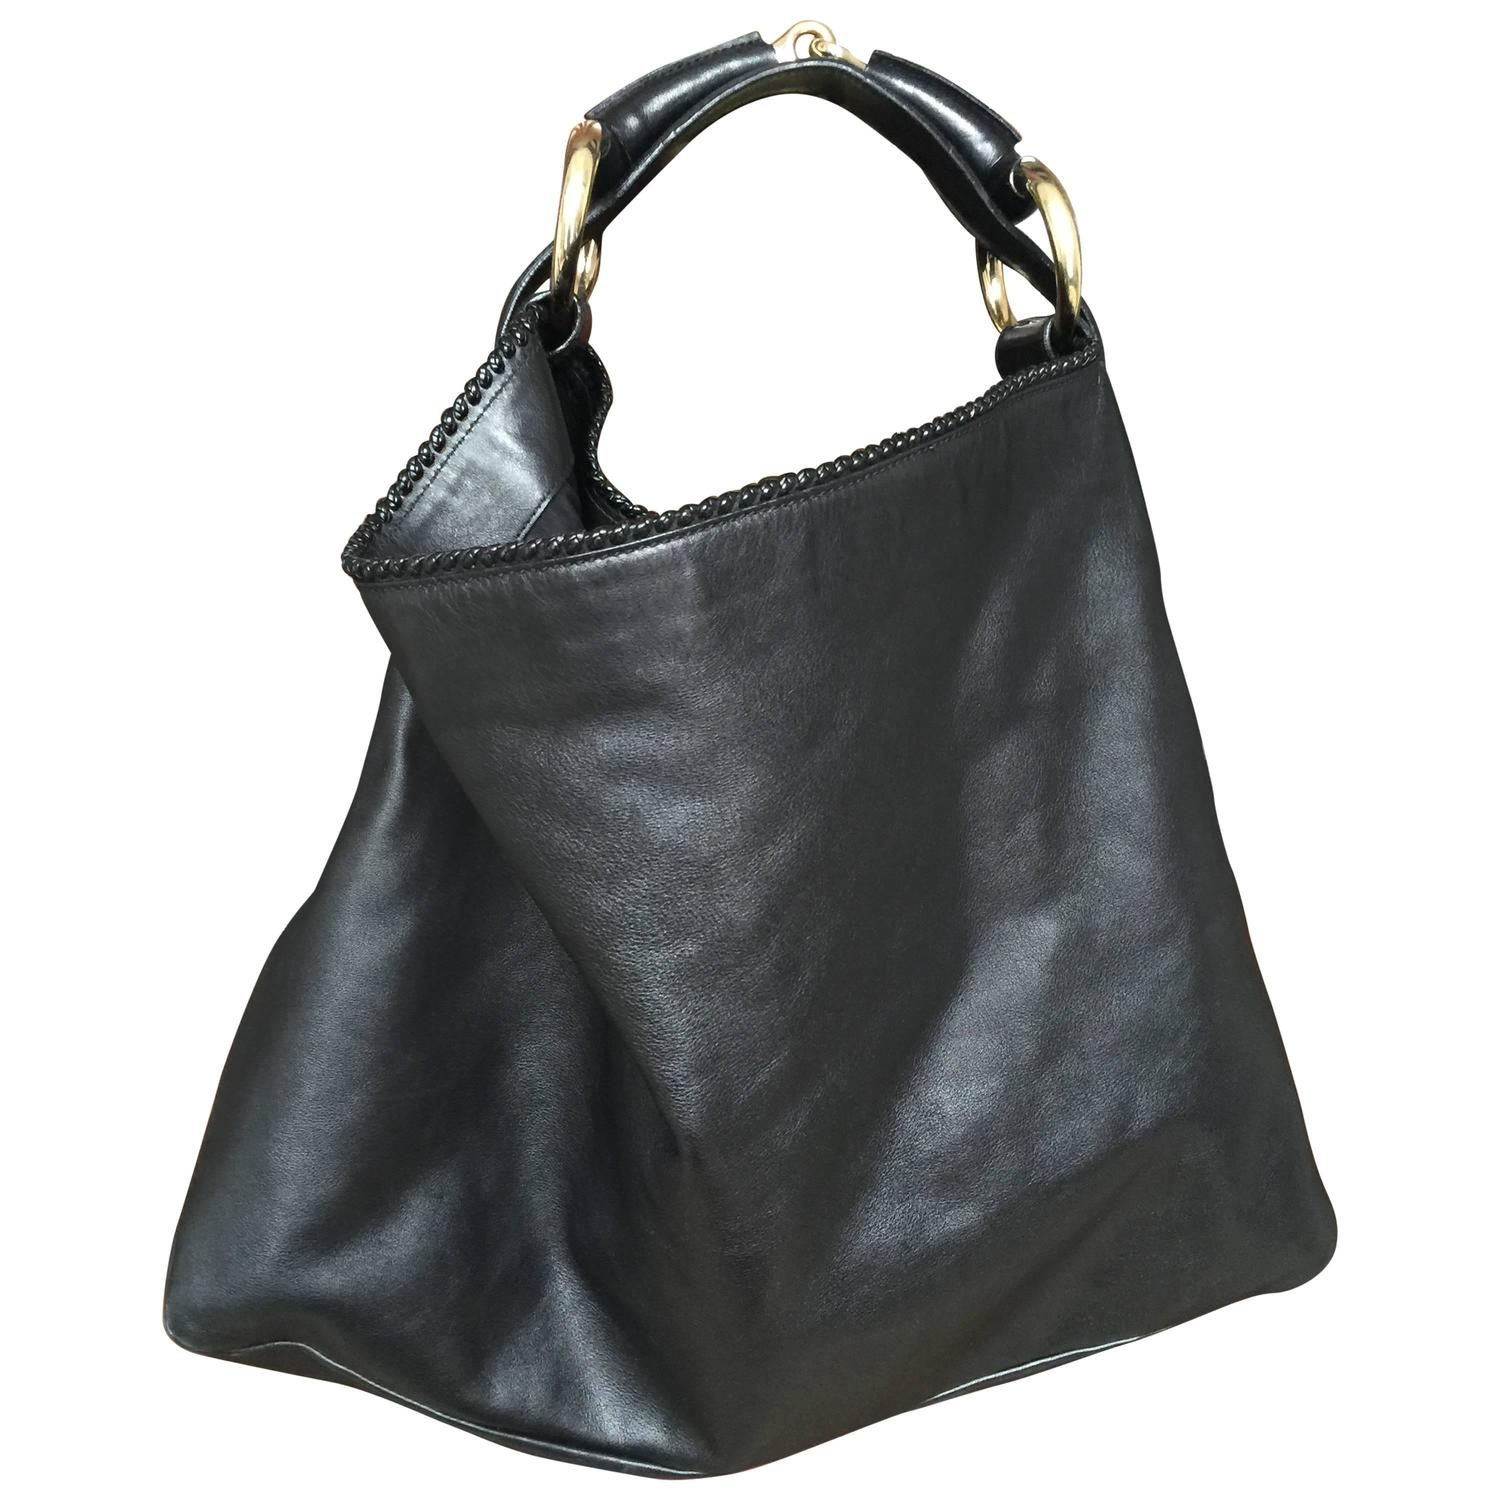 Free shipping BOTH ways on hobo bag, from our vast selection of styles. Fast delivery, and 24/7/ real-person service with a smile. Click or call